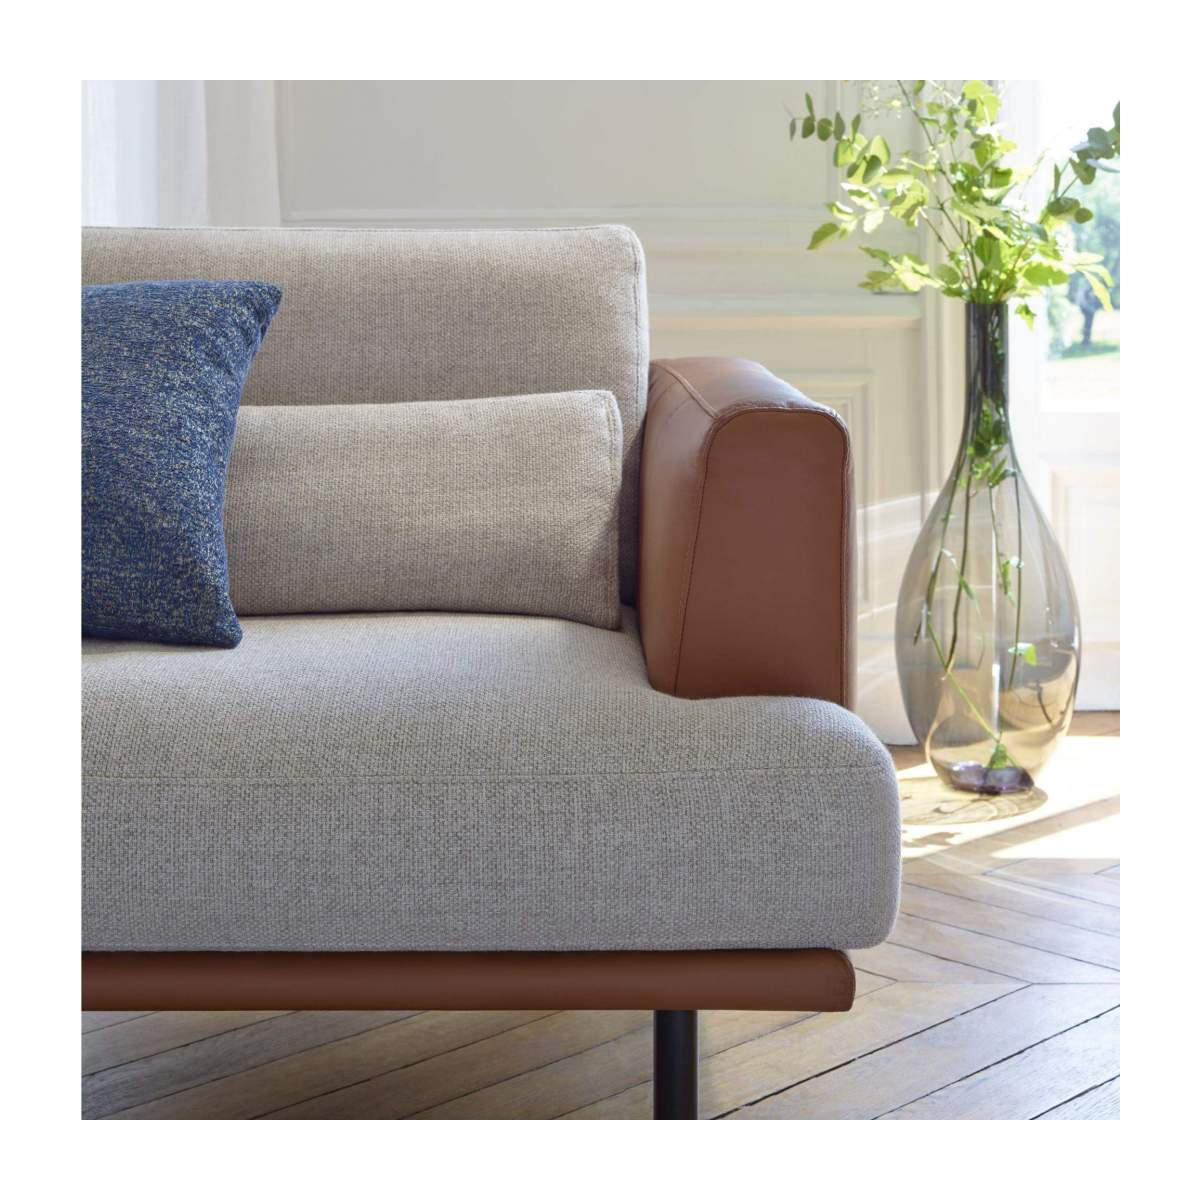 2 seater sofa in Super Velvet fabric, dark blue with base in brown leather n°7